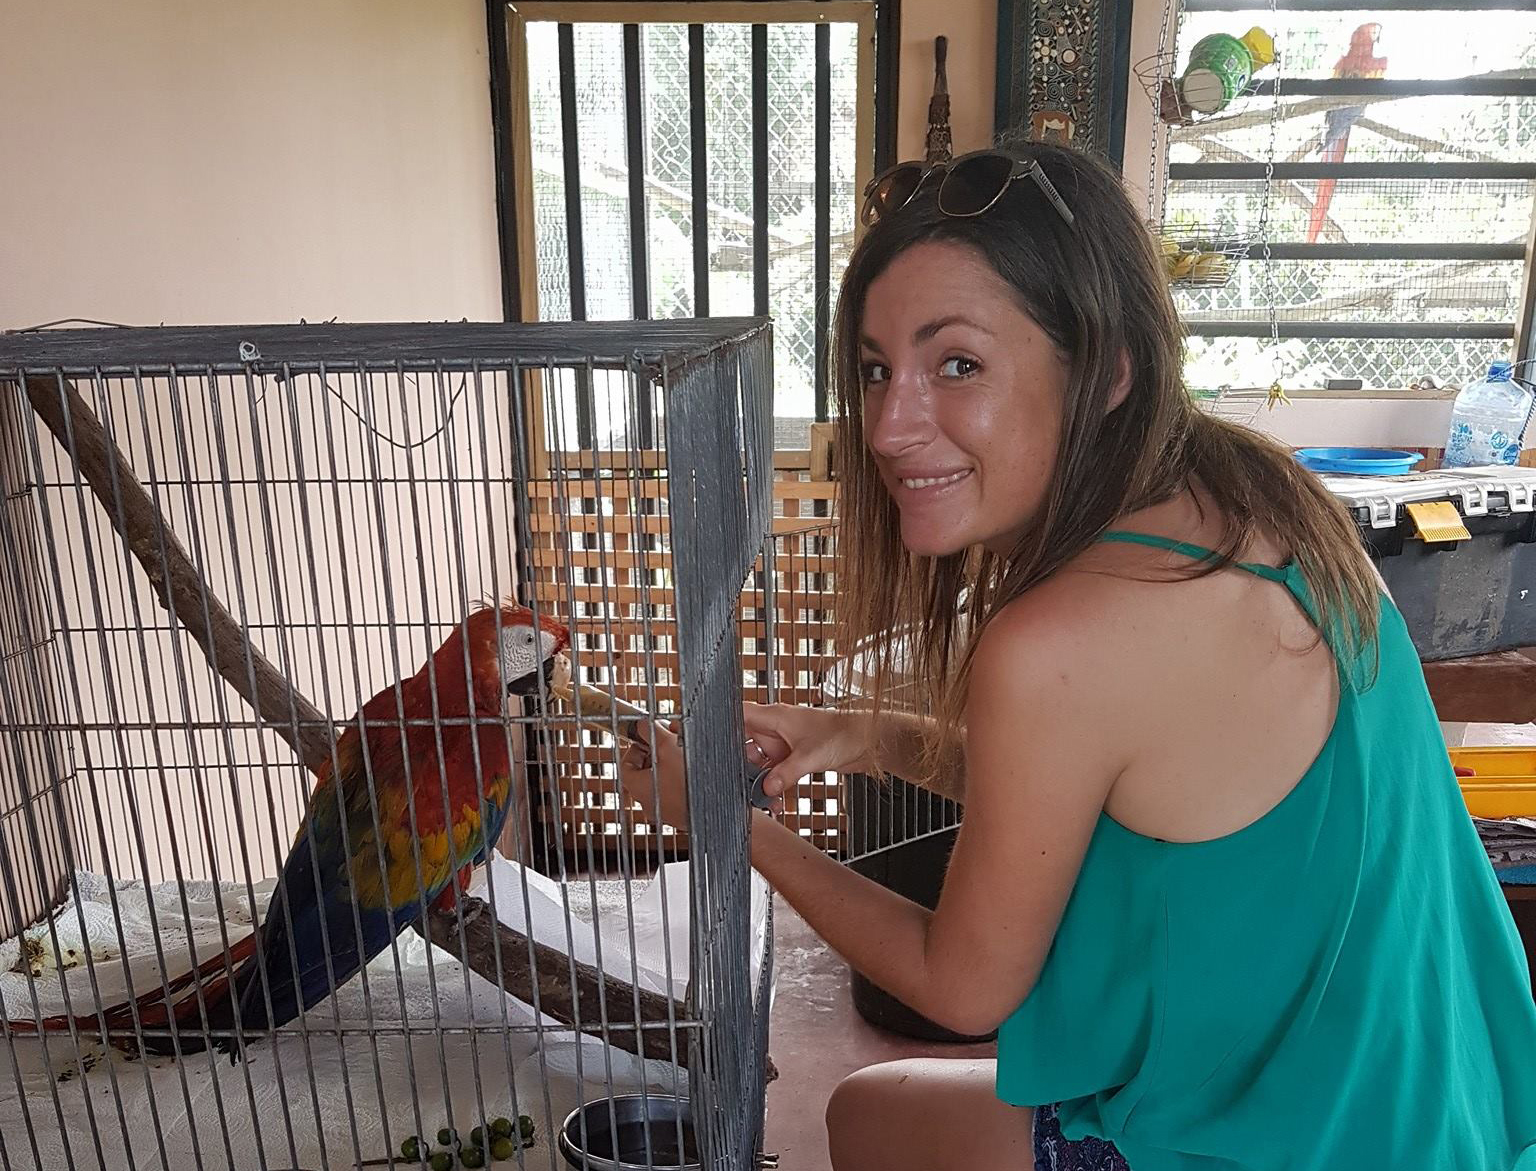 A volunteer helps to feed an injured macaw